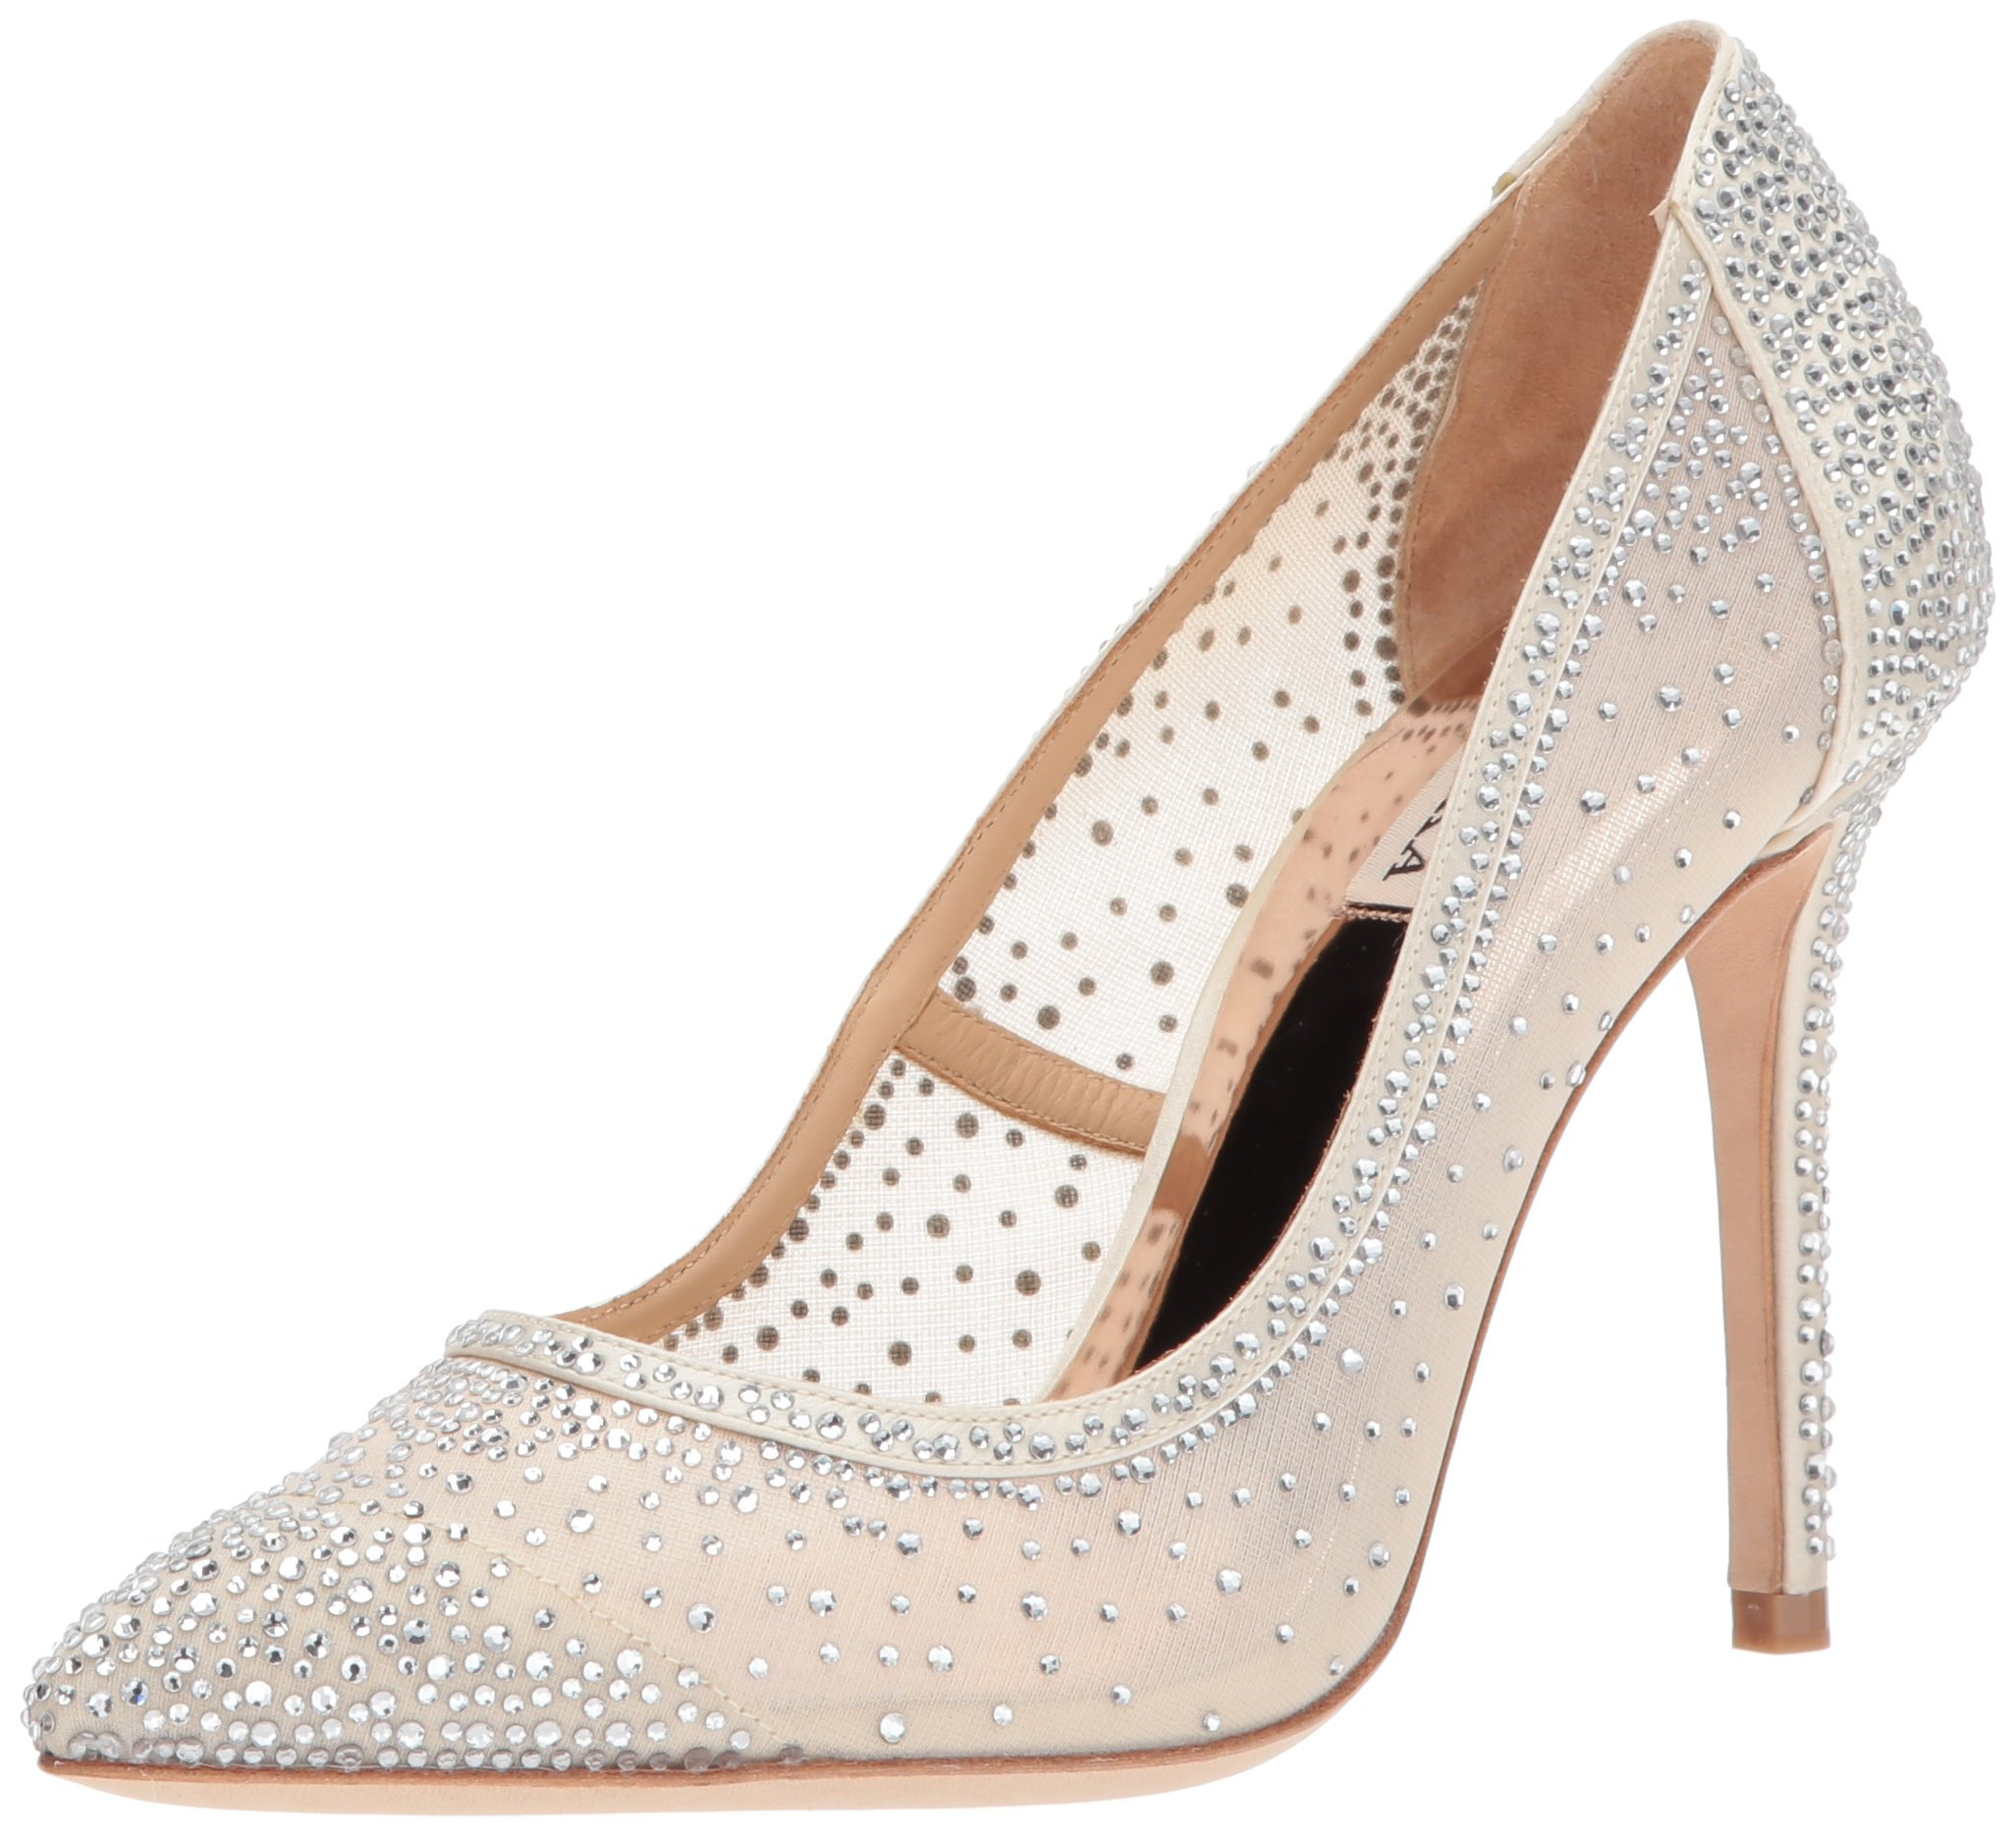 Badgley Mischka Women's Weslee Pump, Ivory, 8.5 M US